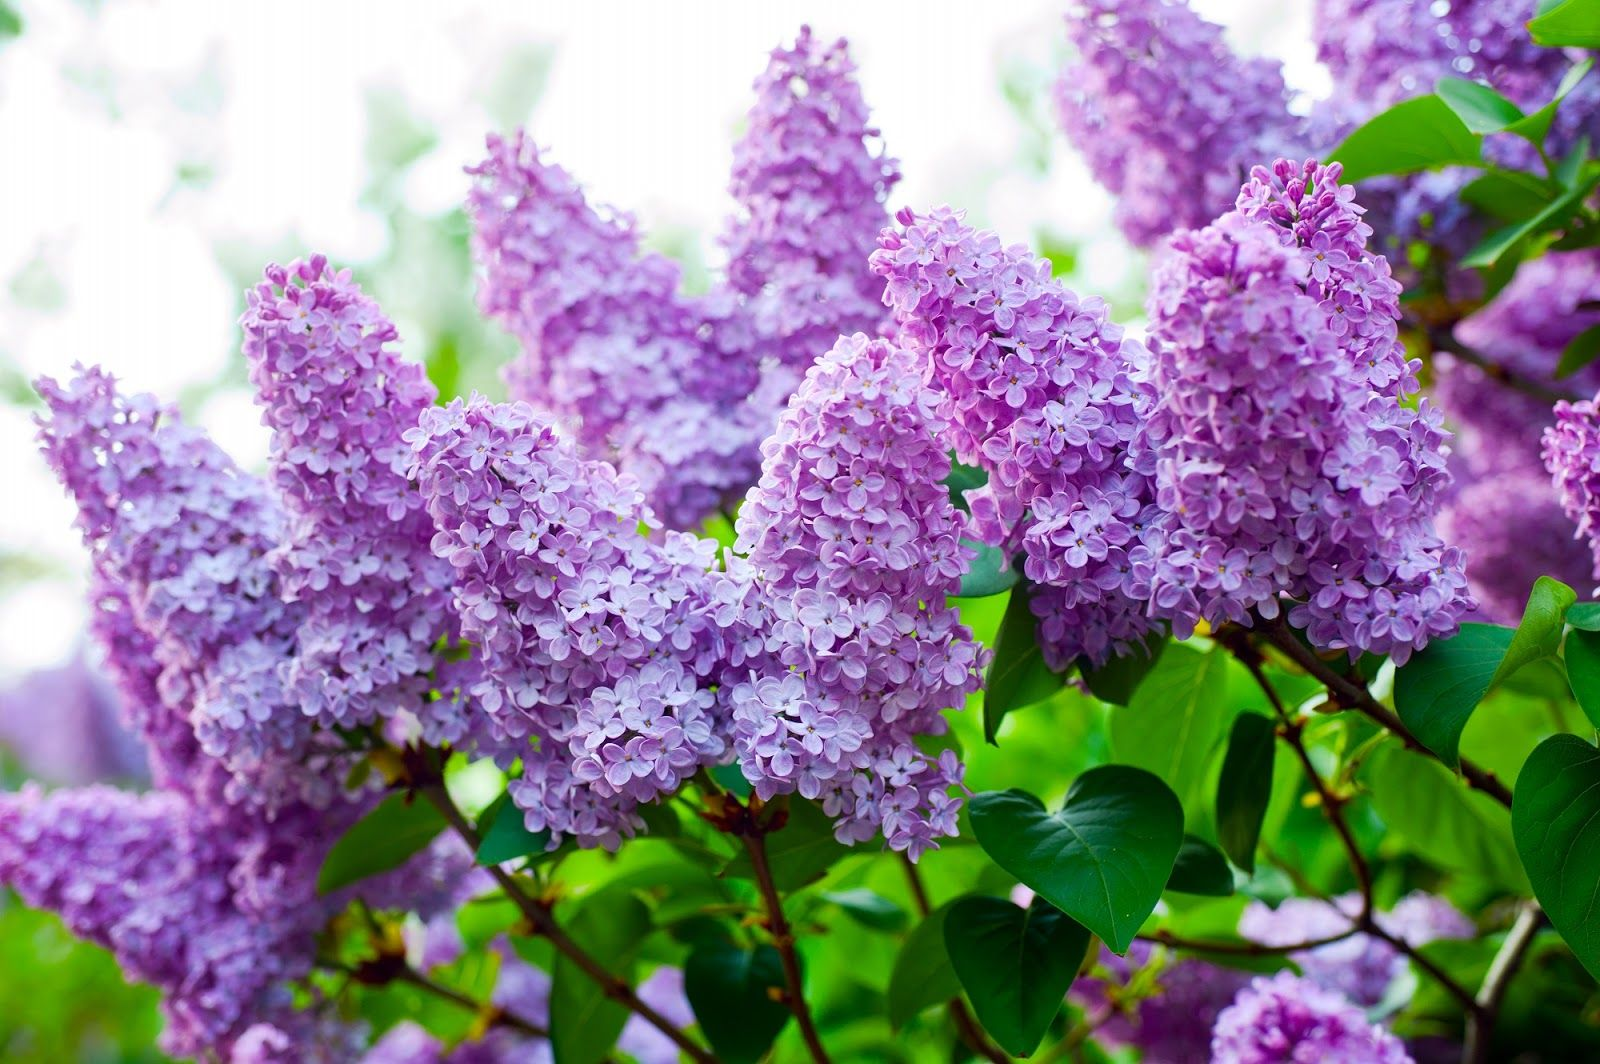 Lilacs Prune At The Right Time Flower Buds Are Formed The Previous Year So Don T Prune Until After The Lilac Has Bloom Lilac Tree Lilac Flowers Lilac Plant